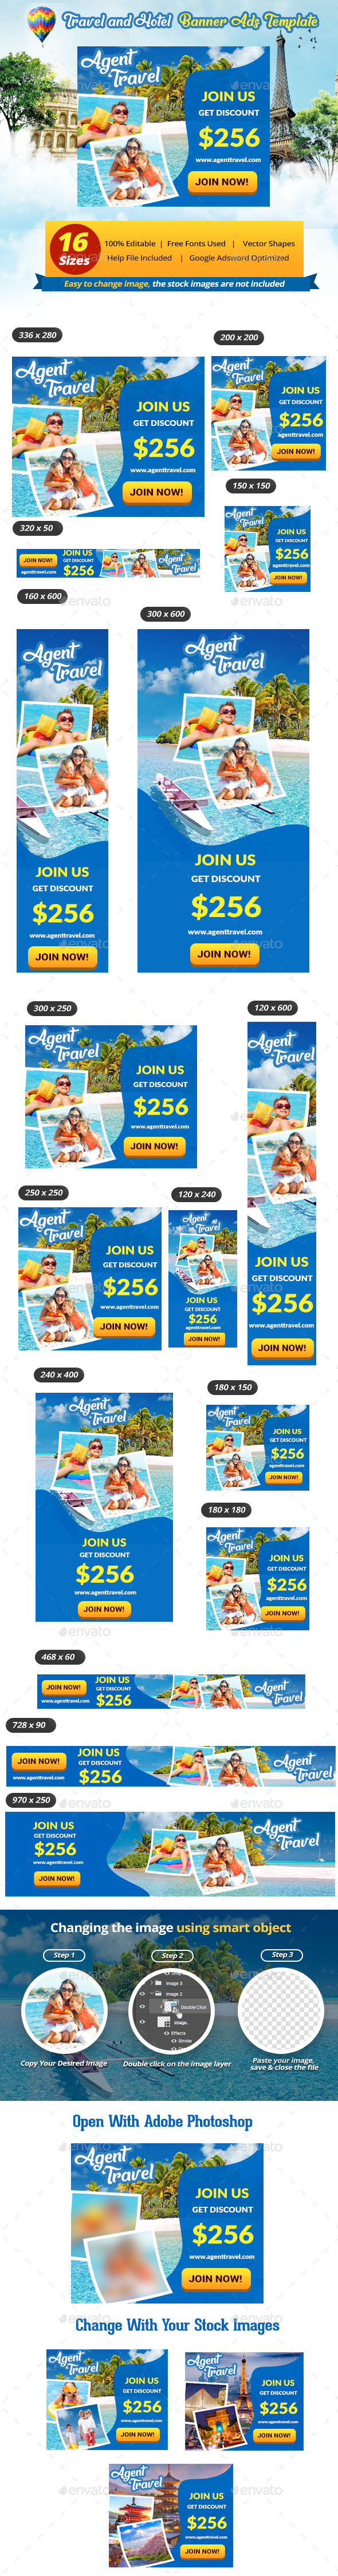 Hotel and Travel Banner Ads Template - Banners & Ads Web Elements